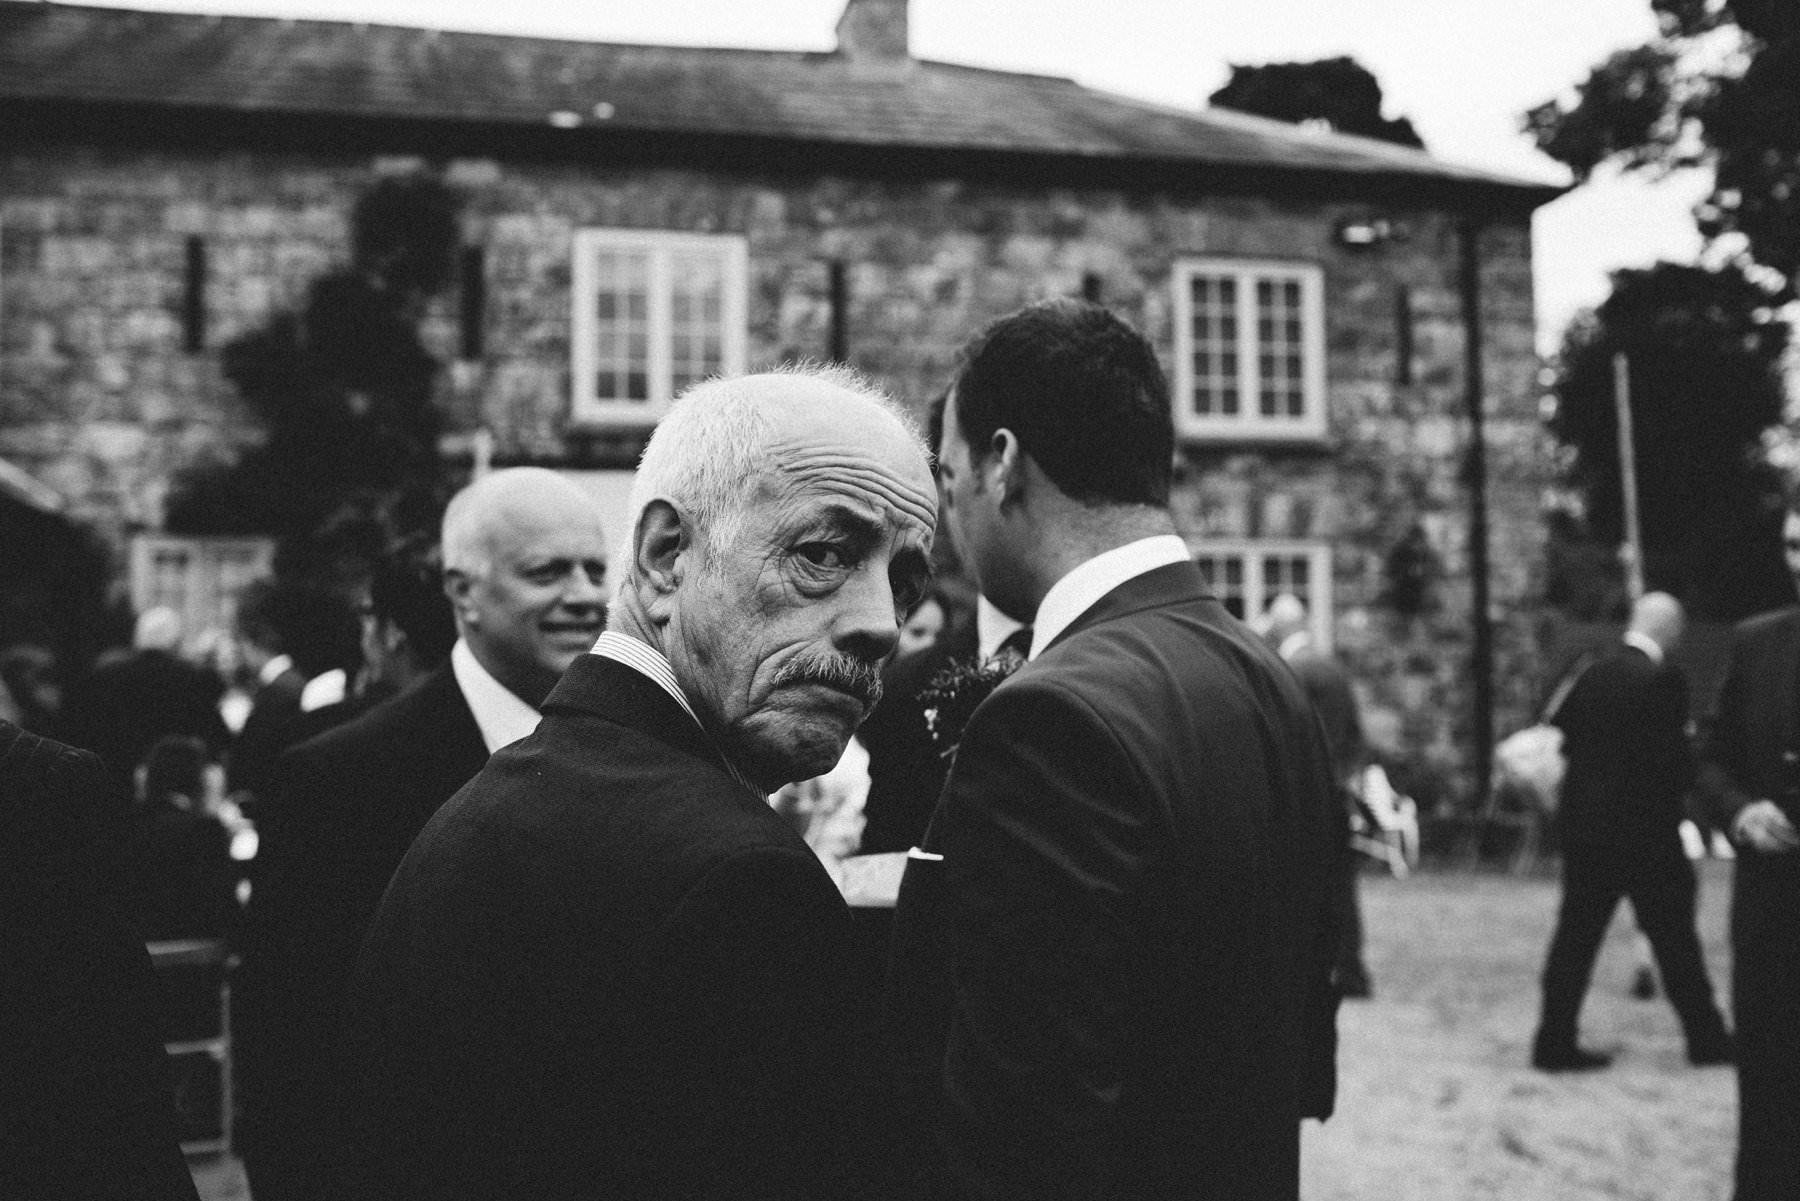 old man wedding guest tullyveery house wedding photography northern ireland